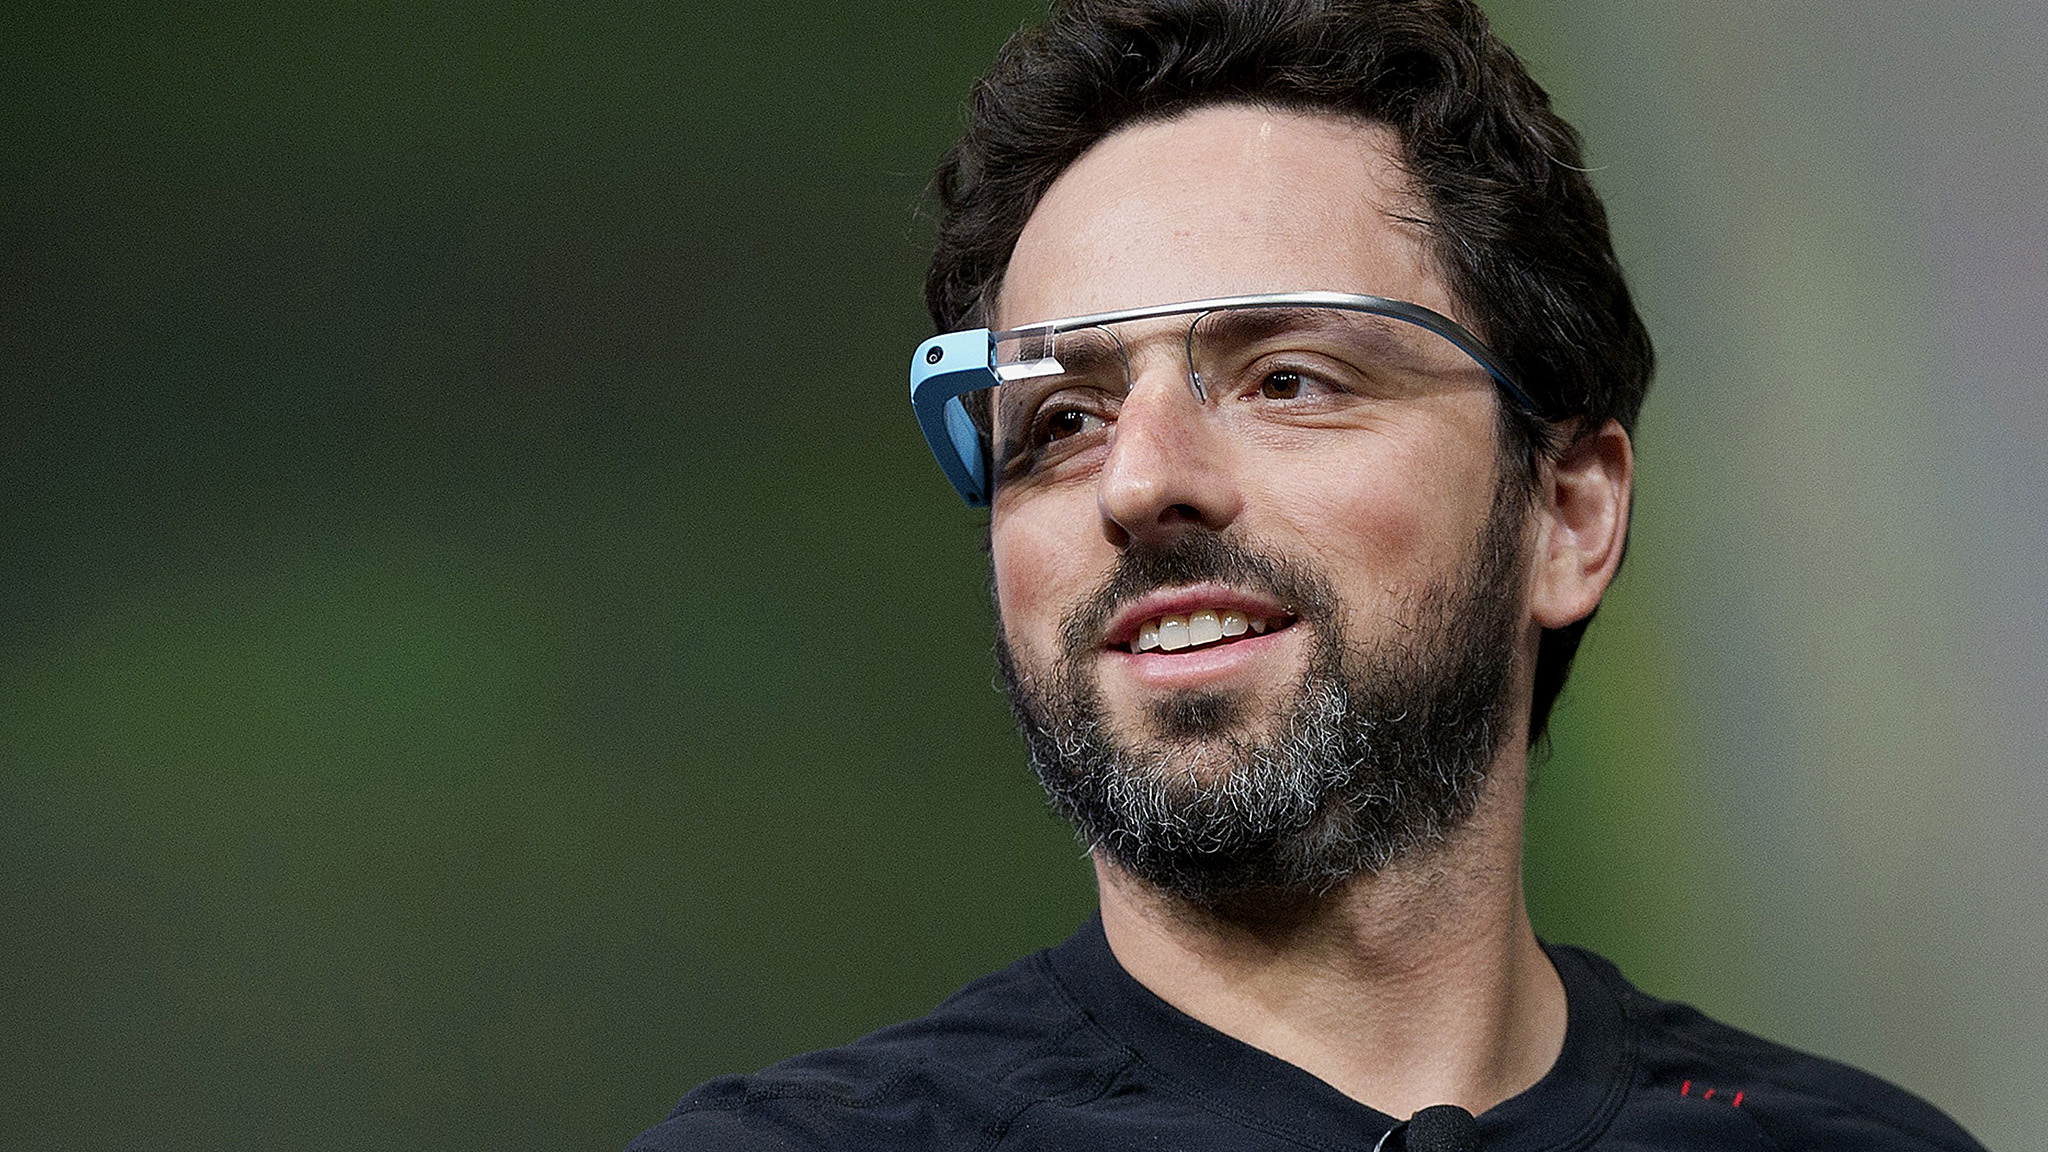 Googles Sergey Brin flags concerns over AI revolution 2048x1152